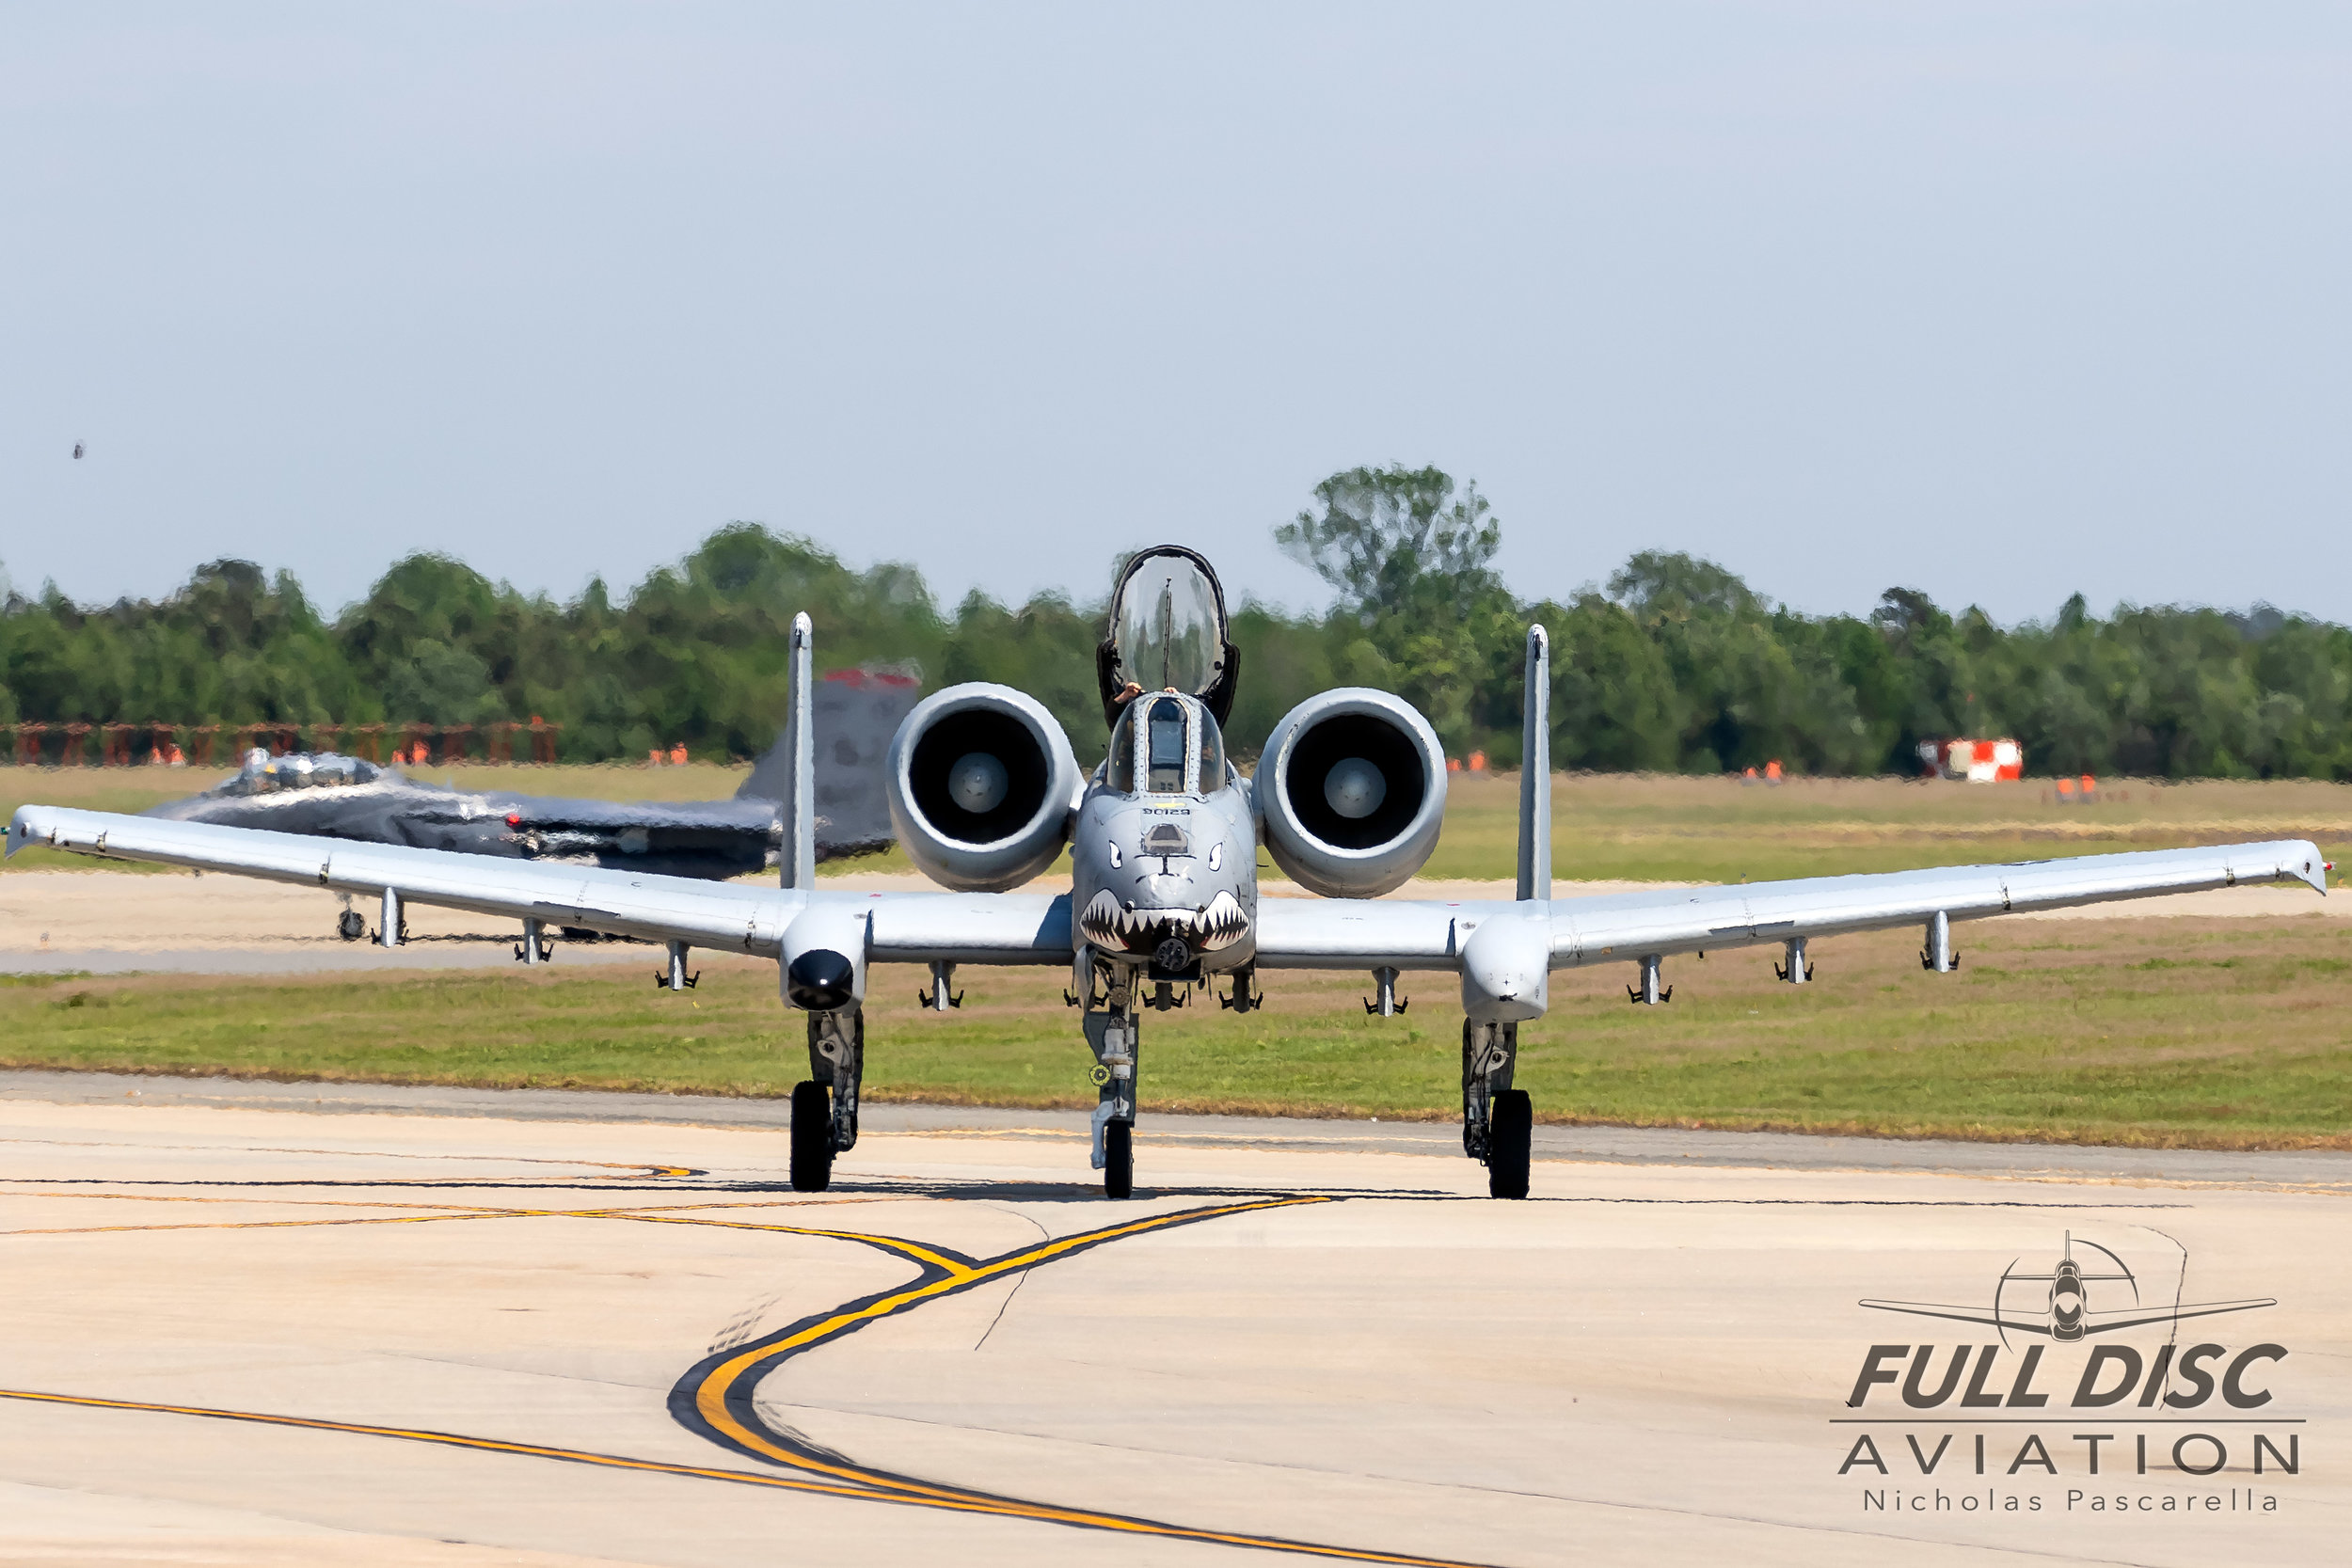 a10_warthog_taxi_flyingtigers_wingsoverwayne_seymourjohnsonafb_nicholaspascarella_fulldiscavation_aviation_airshow.jpg